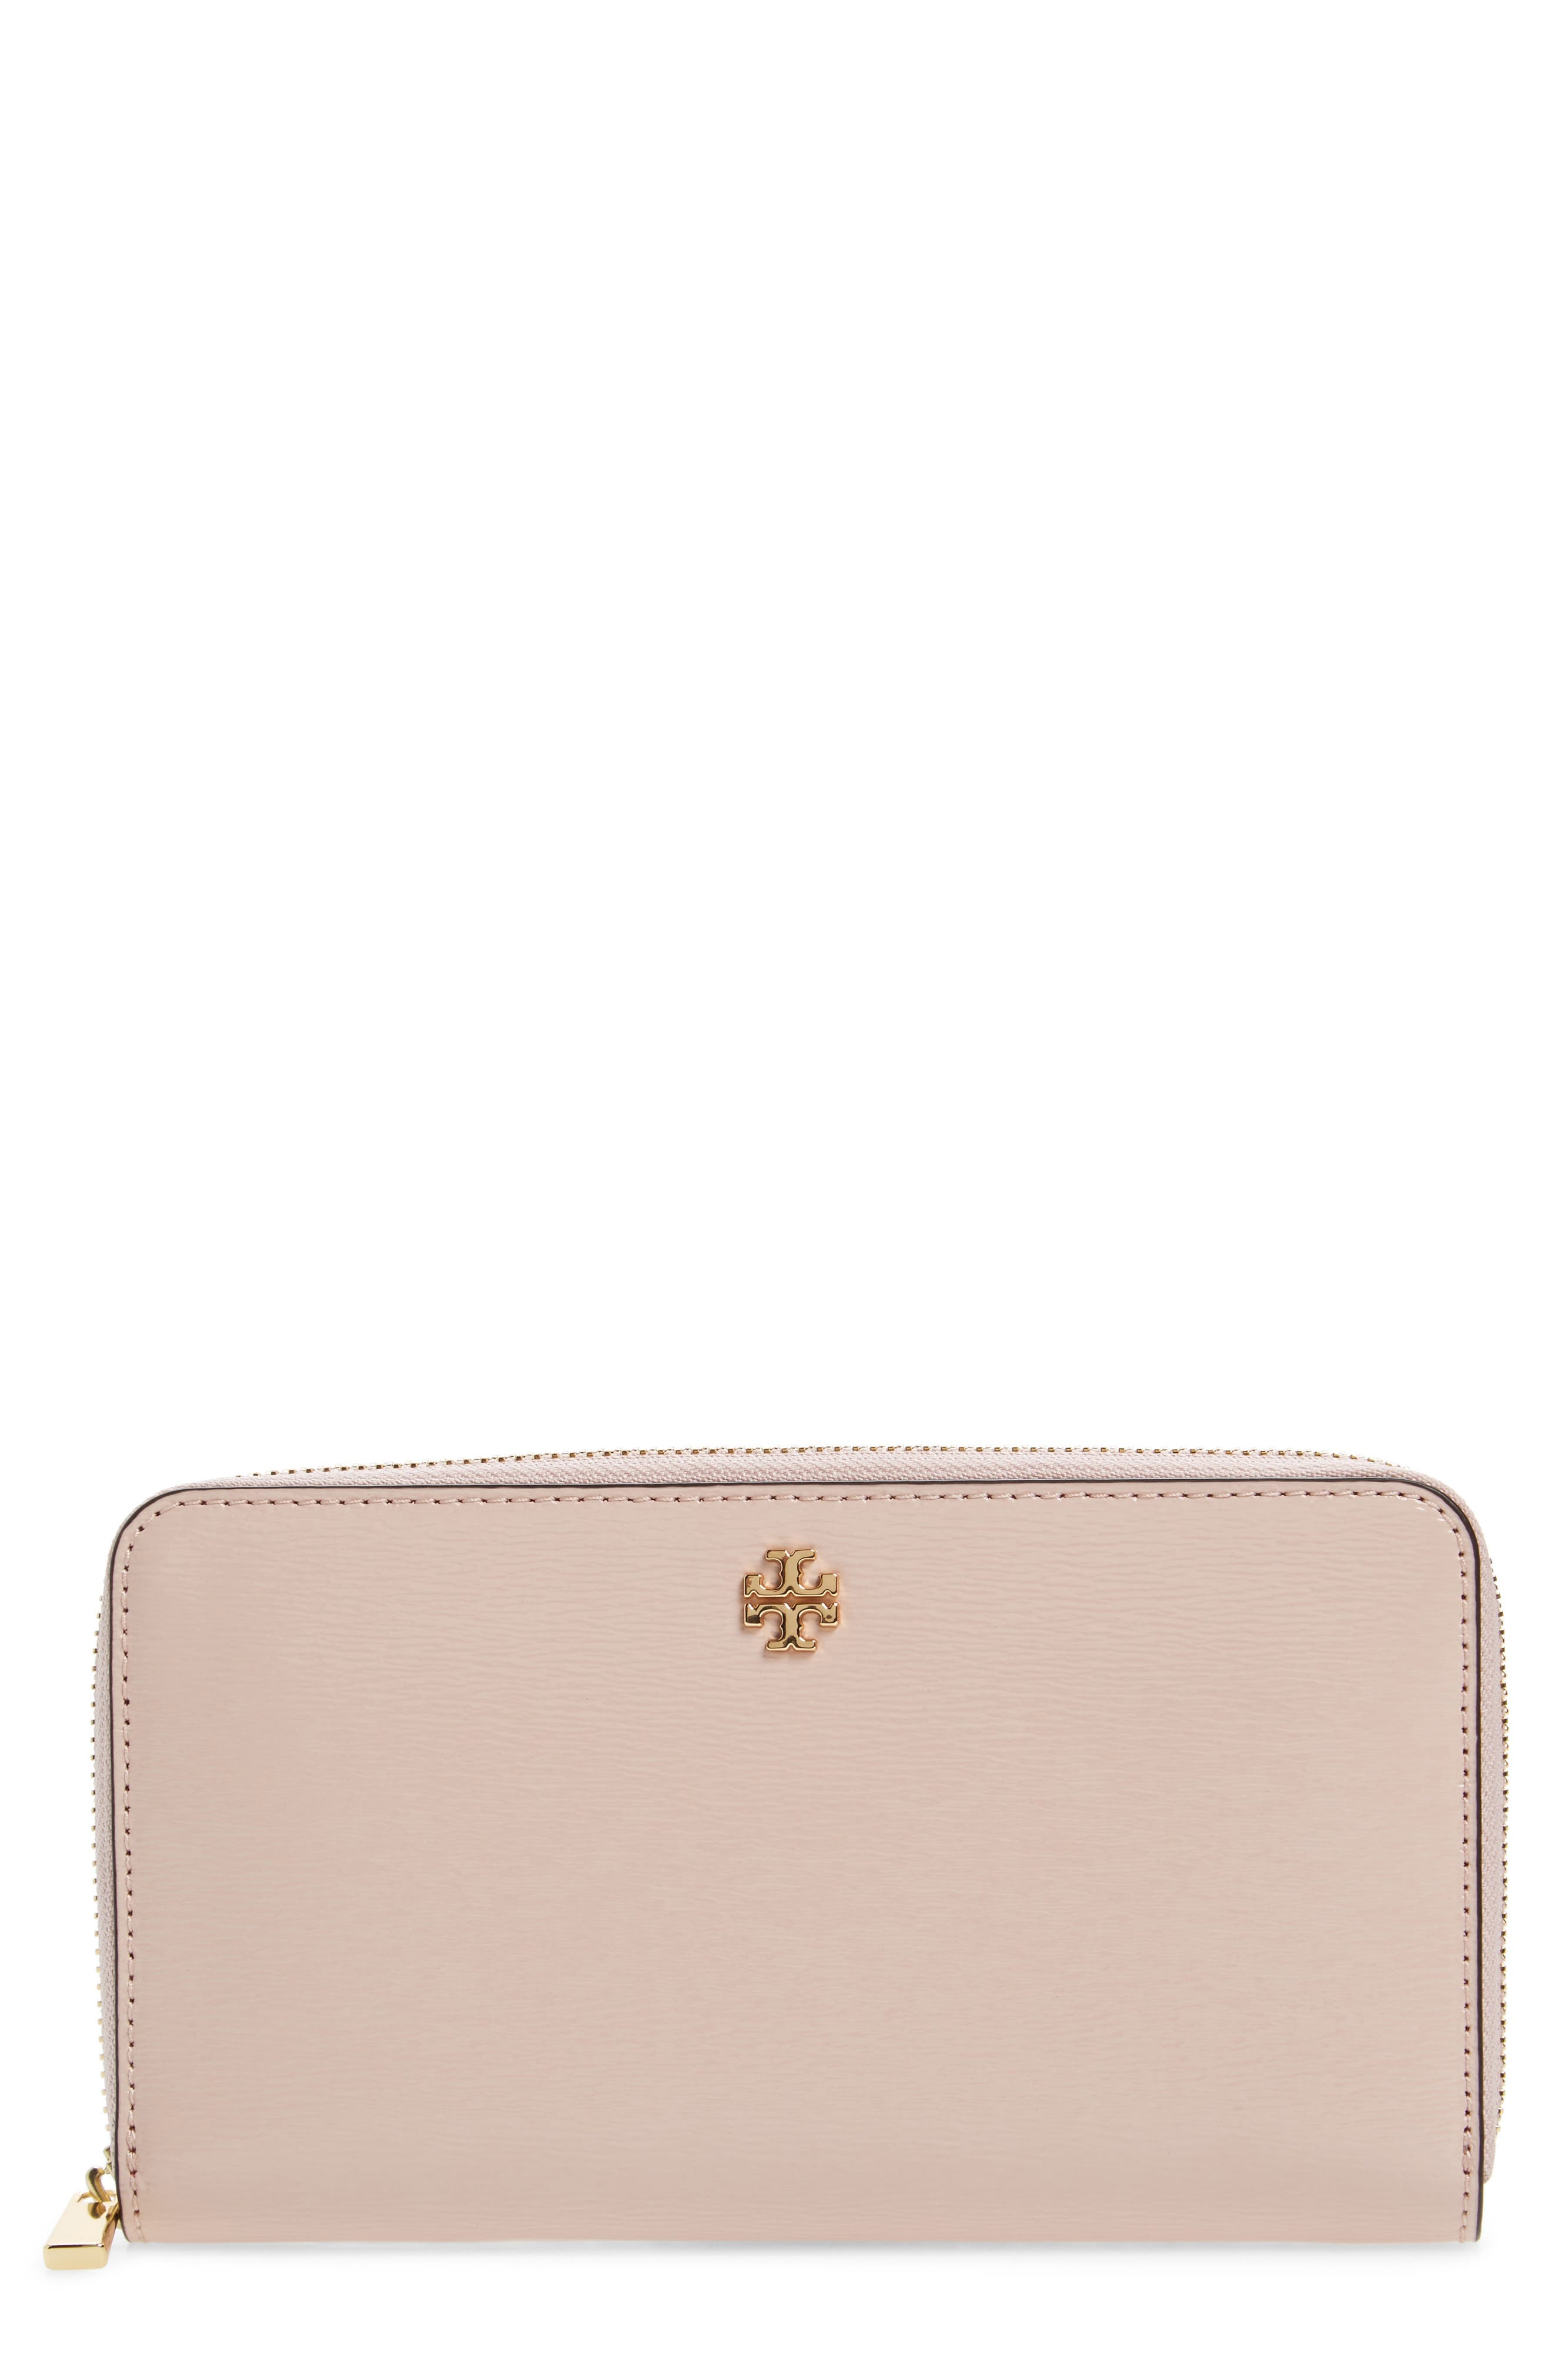 Robinson Patent Leather Continental Wallet,                         Main,                         color, Shell Pink